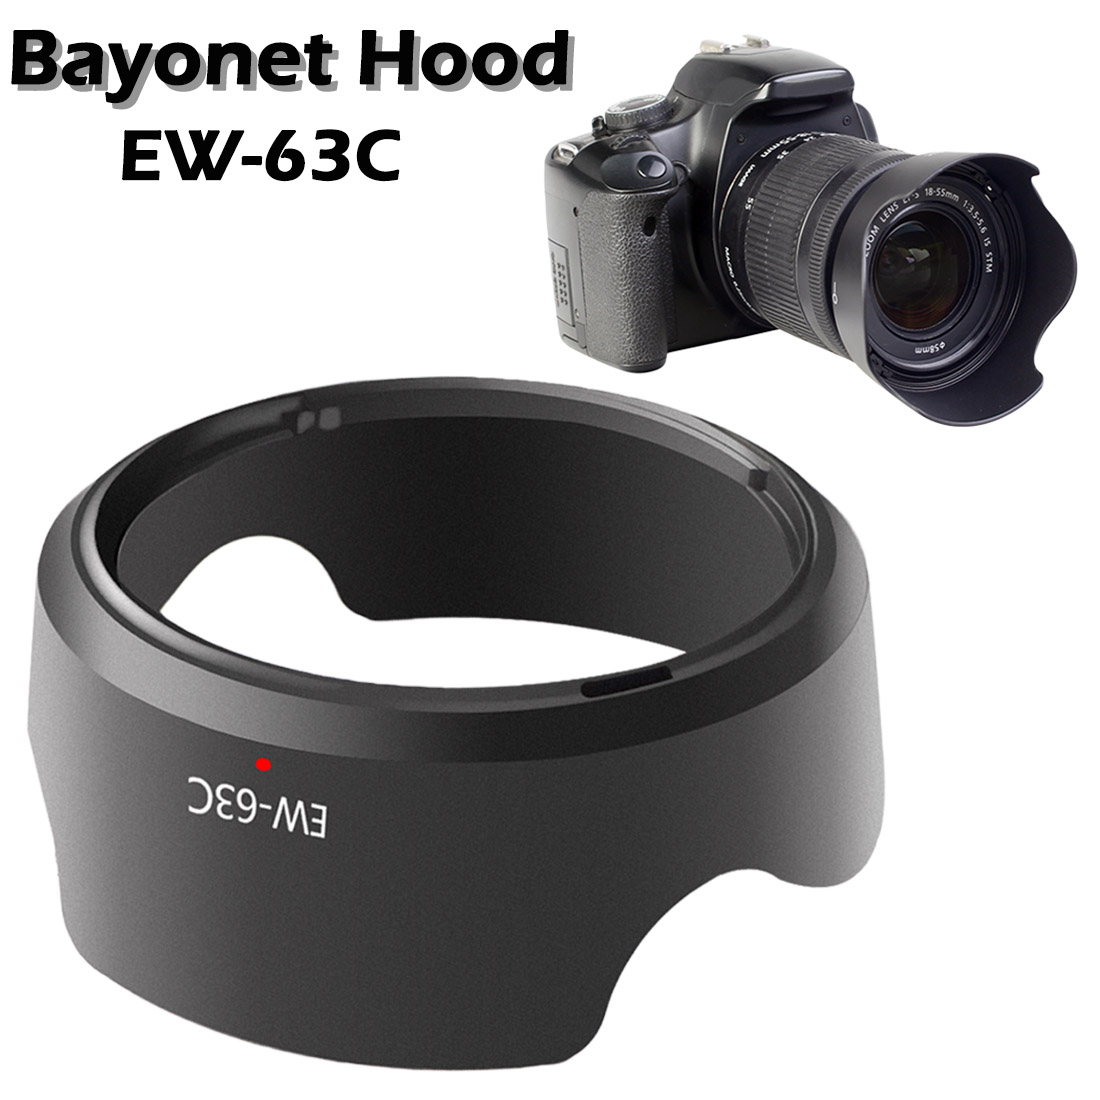 Universal EW-63C Camera Lens Hood For Canon EF-S 18-55mm F/3.5-5.6 IS 58mm Screw-in Tulip Flower Filter Thread Camera Lens Hood